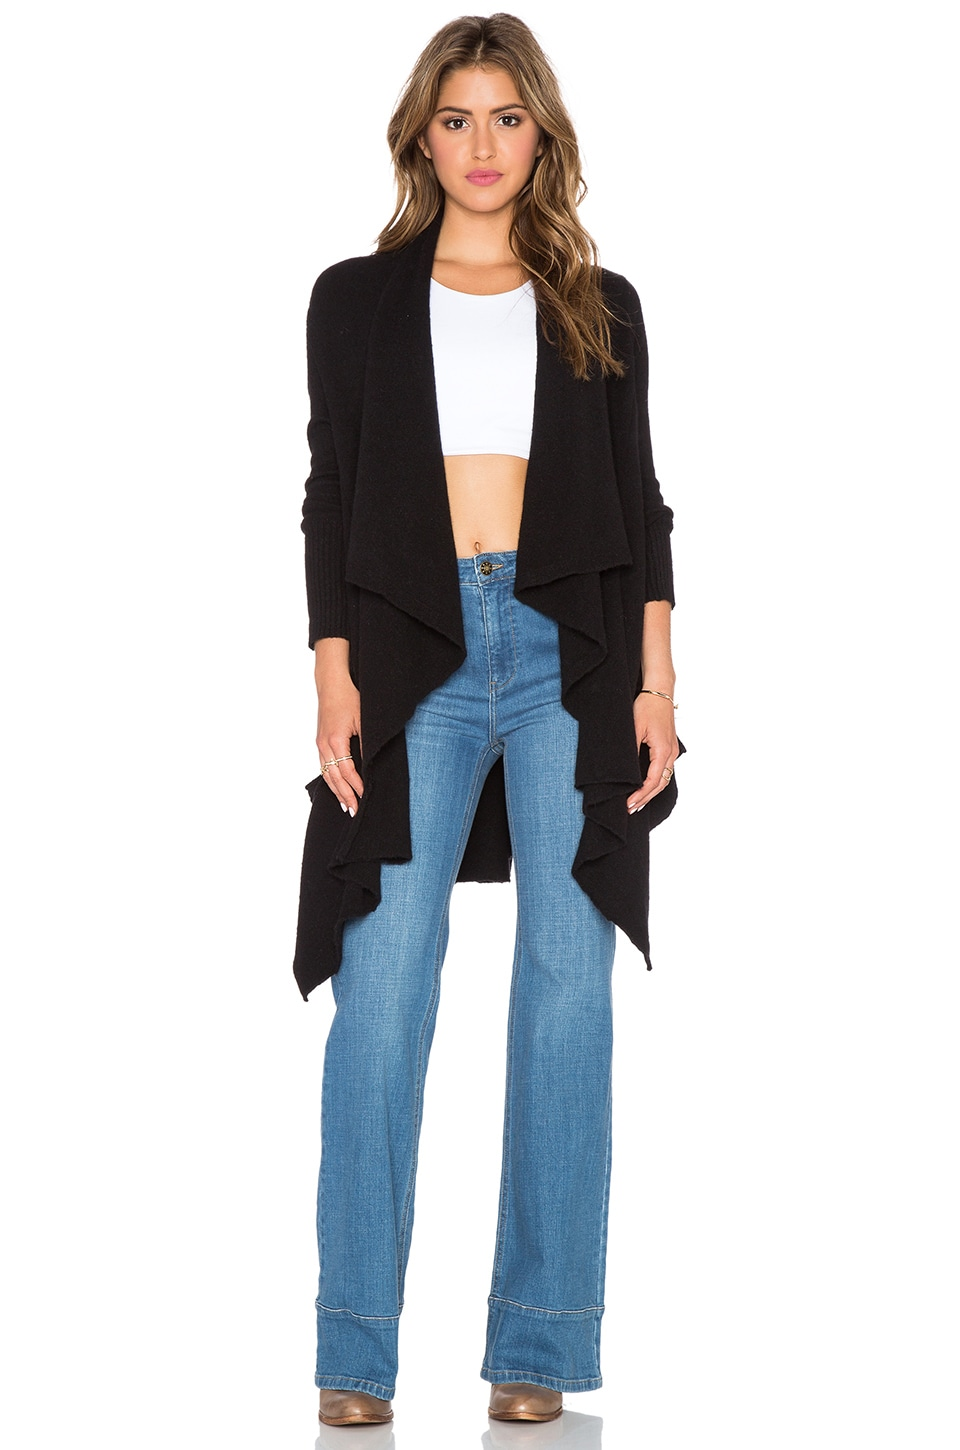 Free People Waterfall Cardigan in Black | REVOLVE